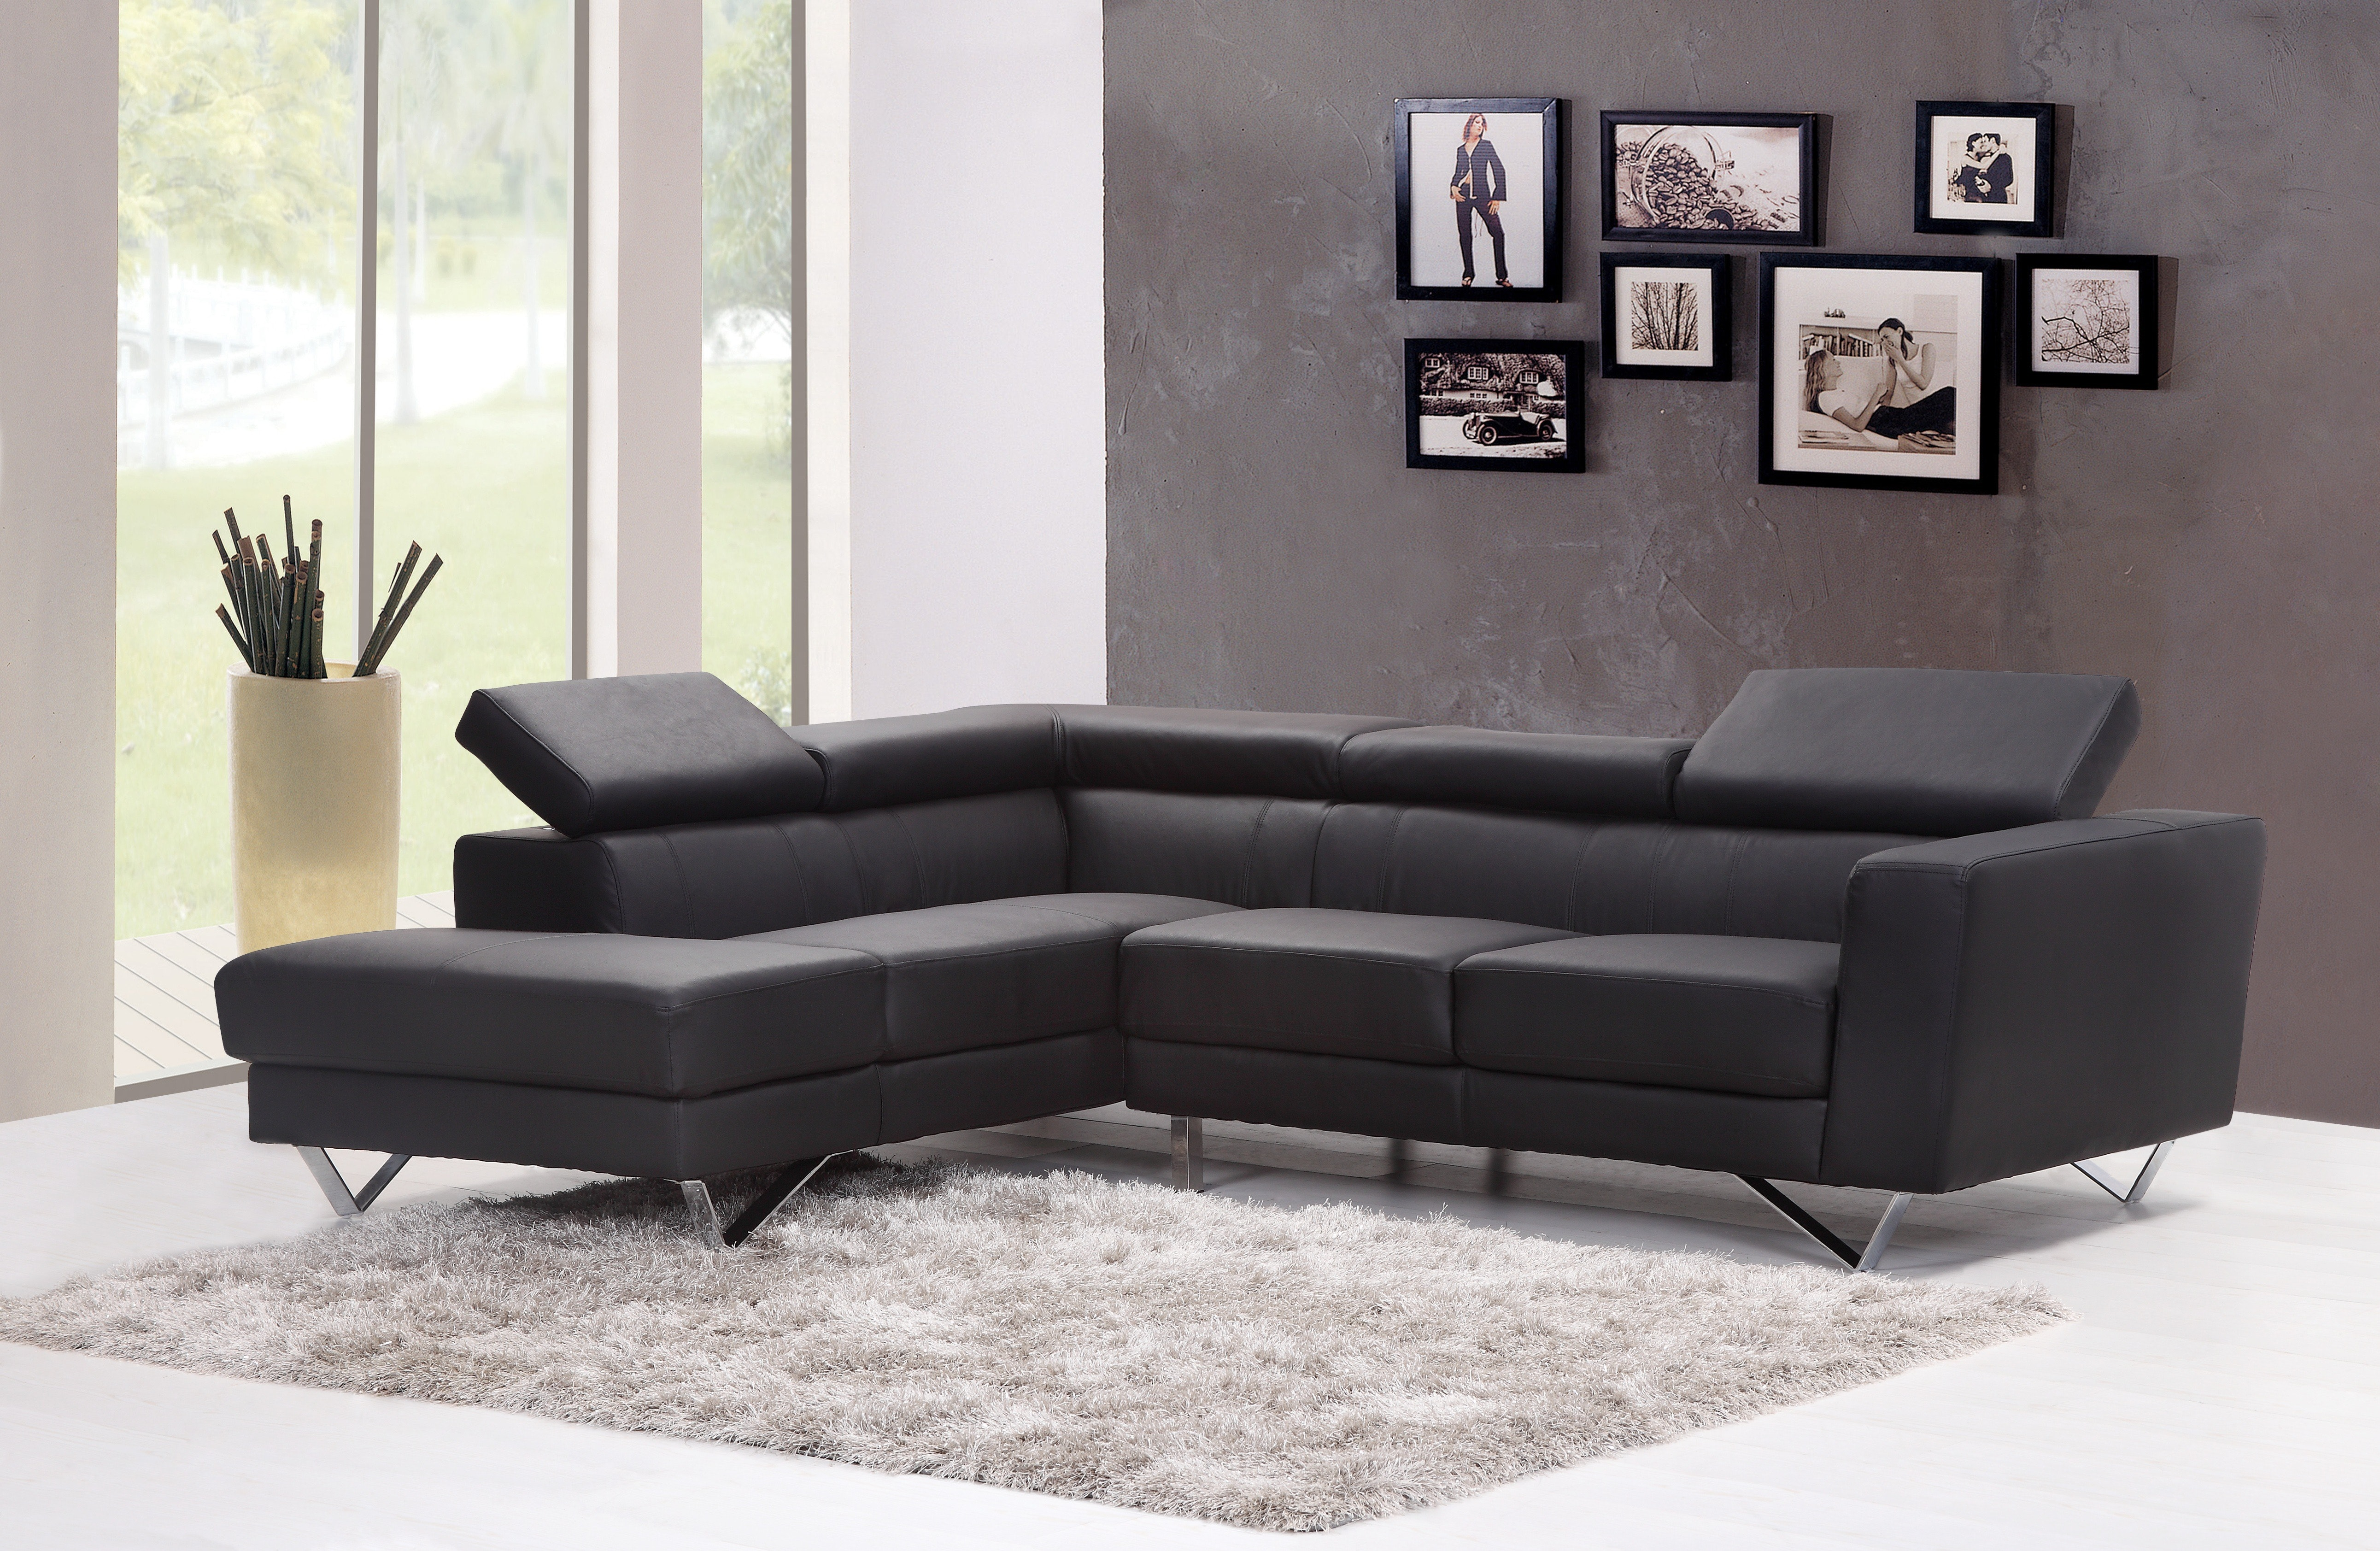 grey couch in the lounge area